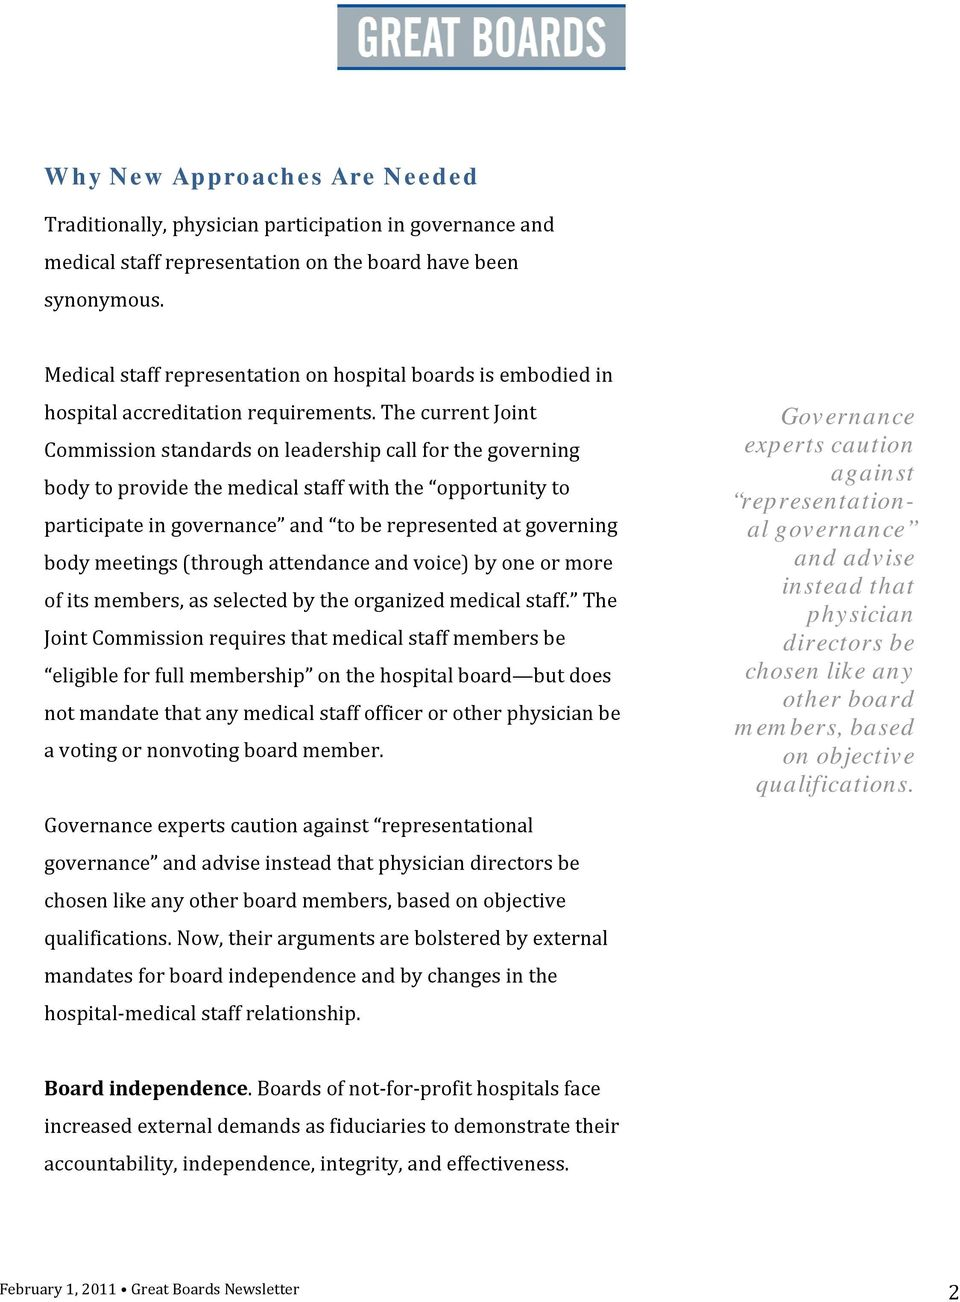 The current Joint Commission standards on leadership call for the governing body to provide the medical staff with the opportunity to participate in governance and to be represented at governing body